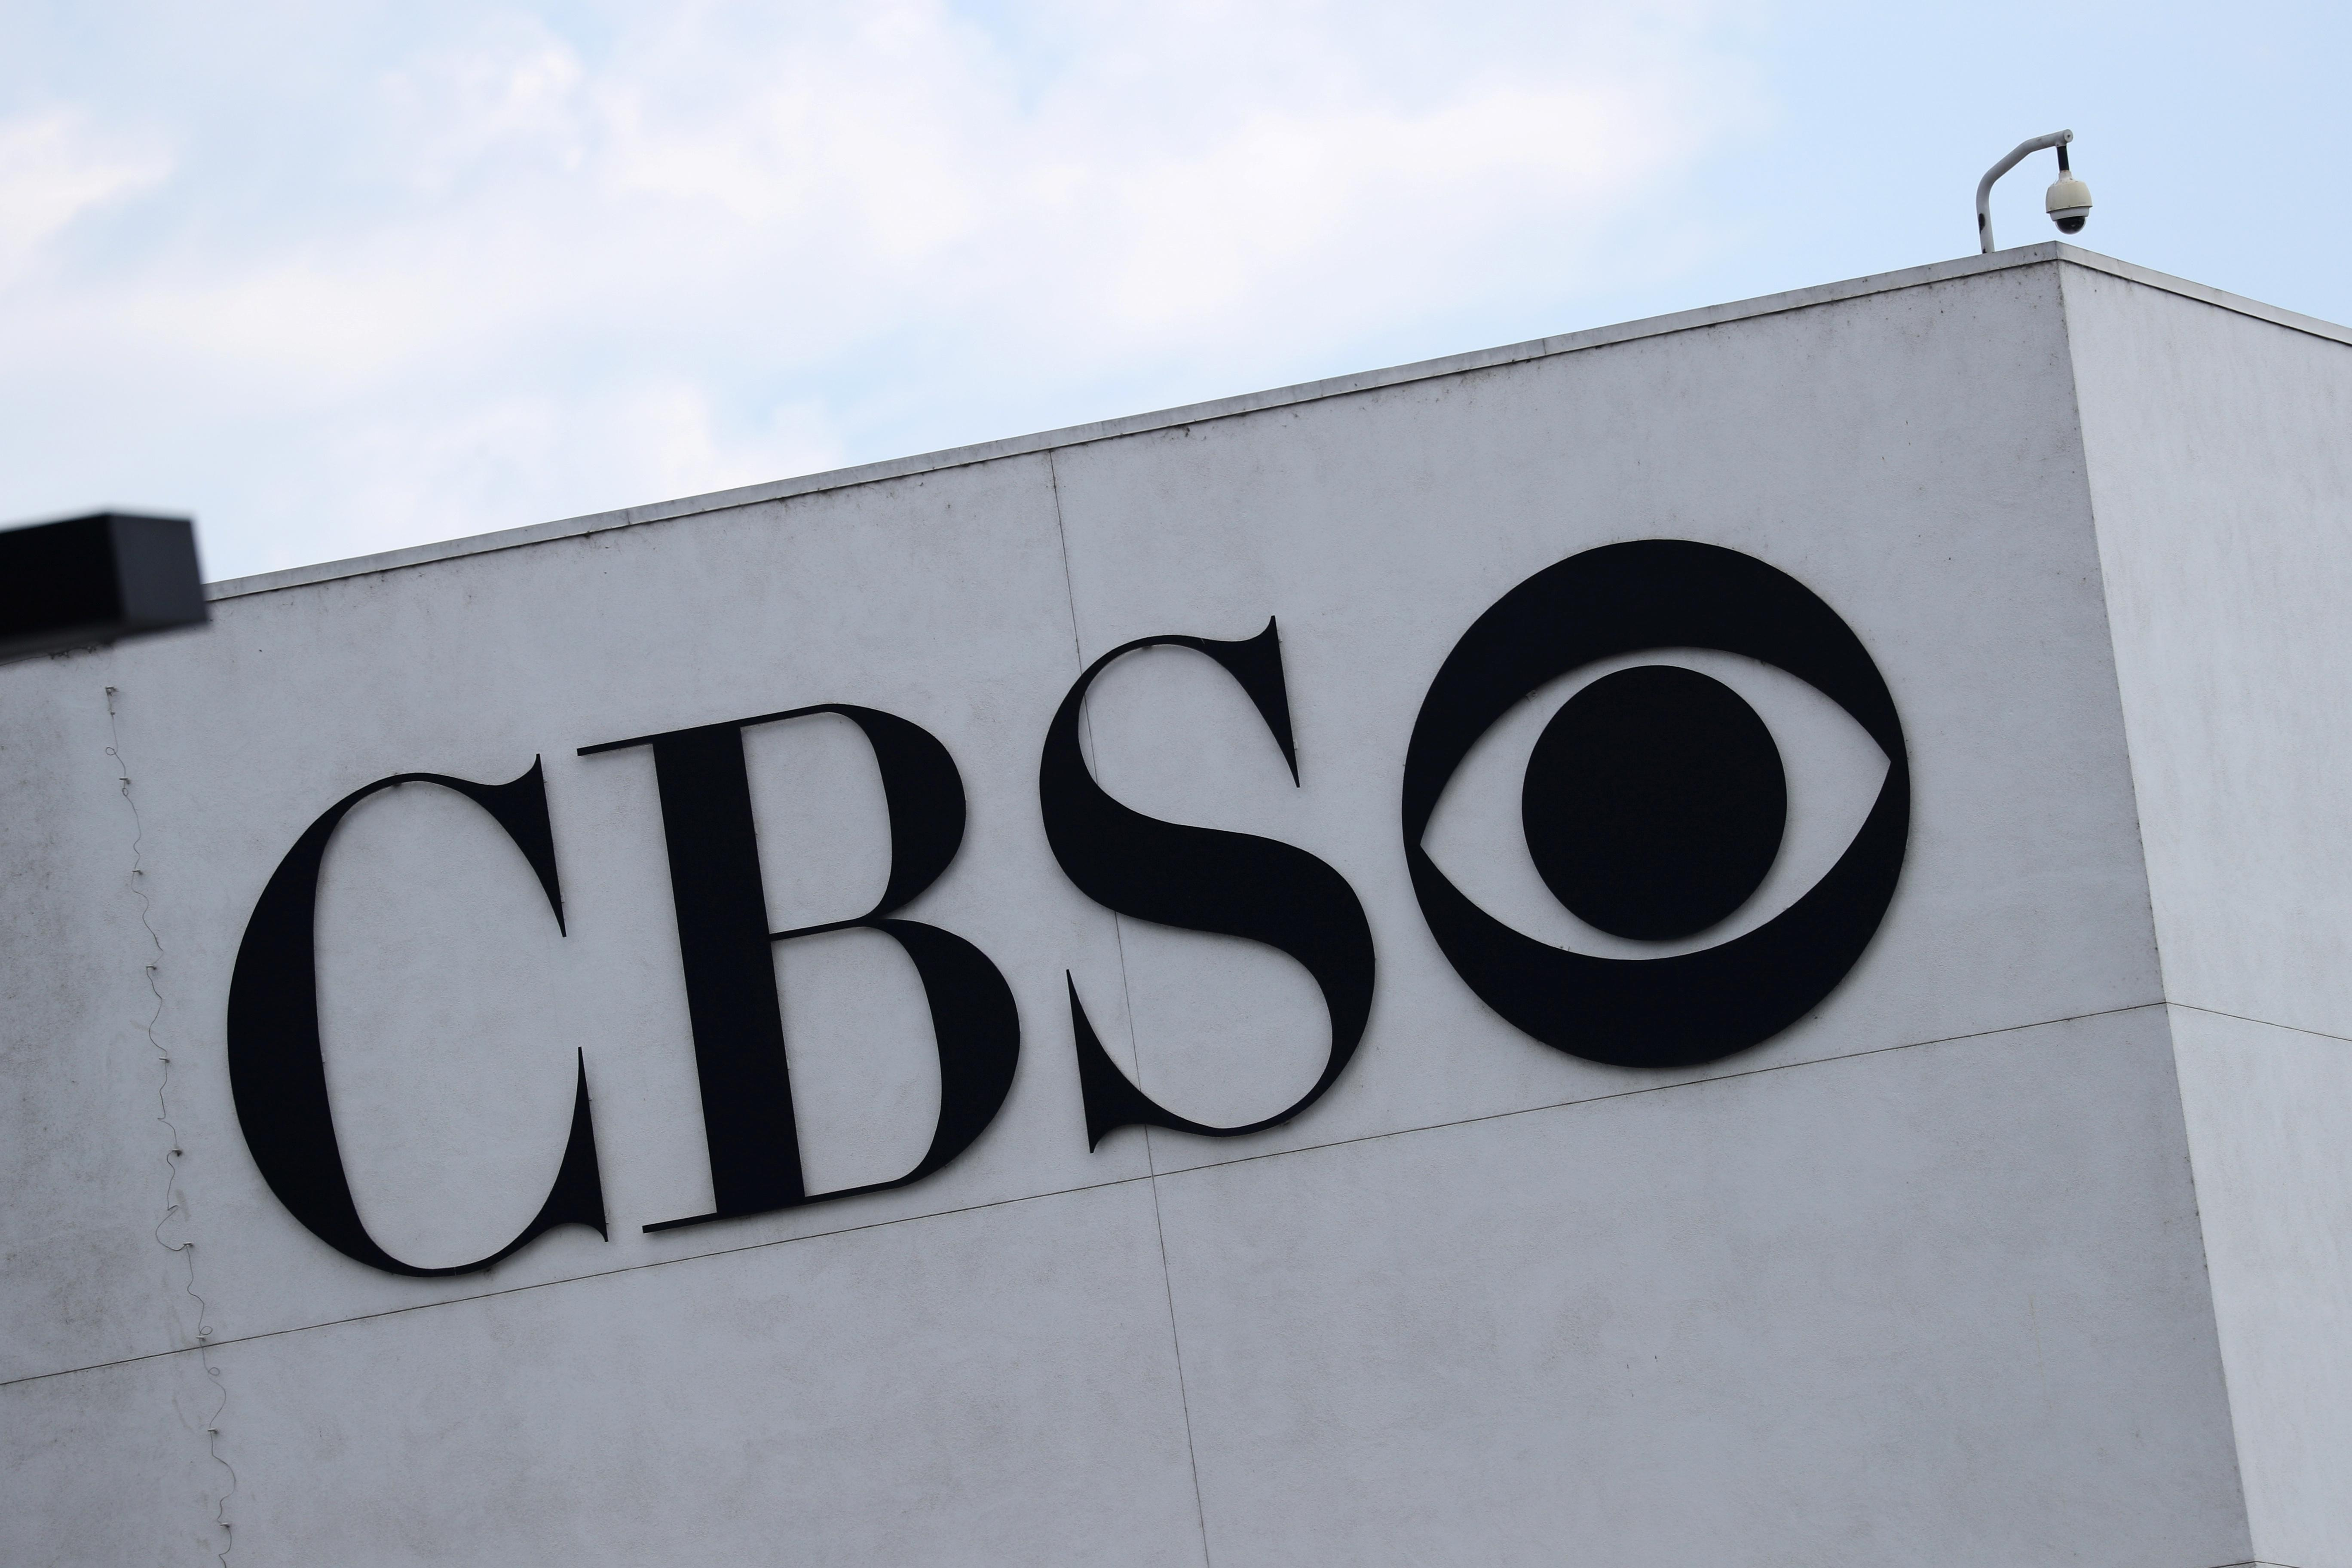 Producer on U.S. TV show '60 Minutes' sues CBS for alleged gender...